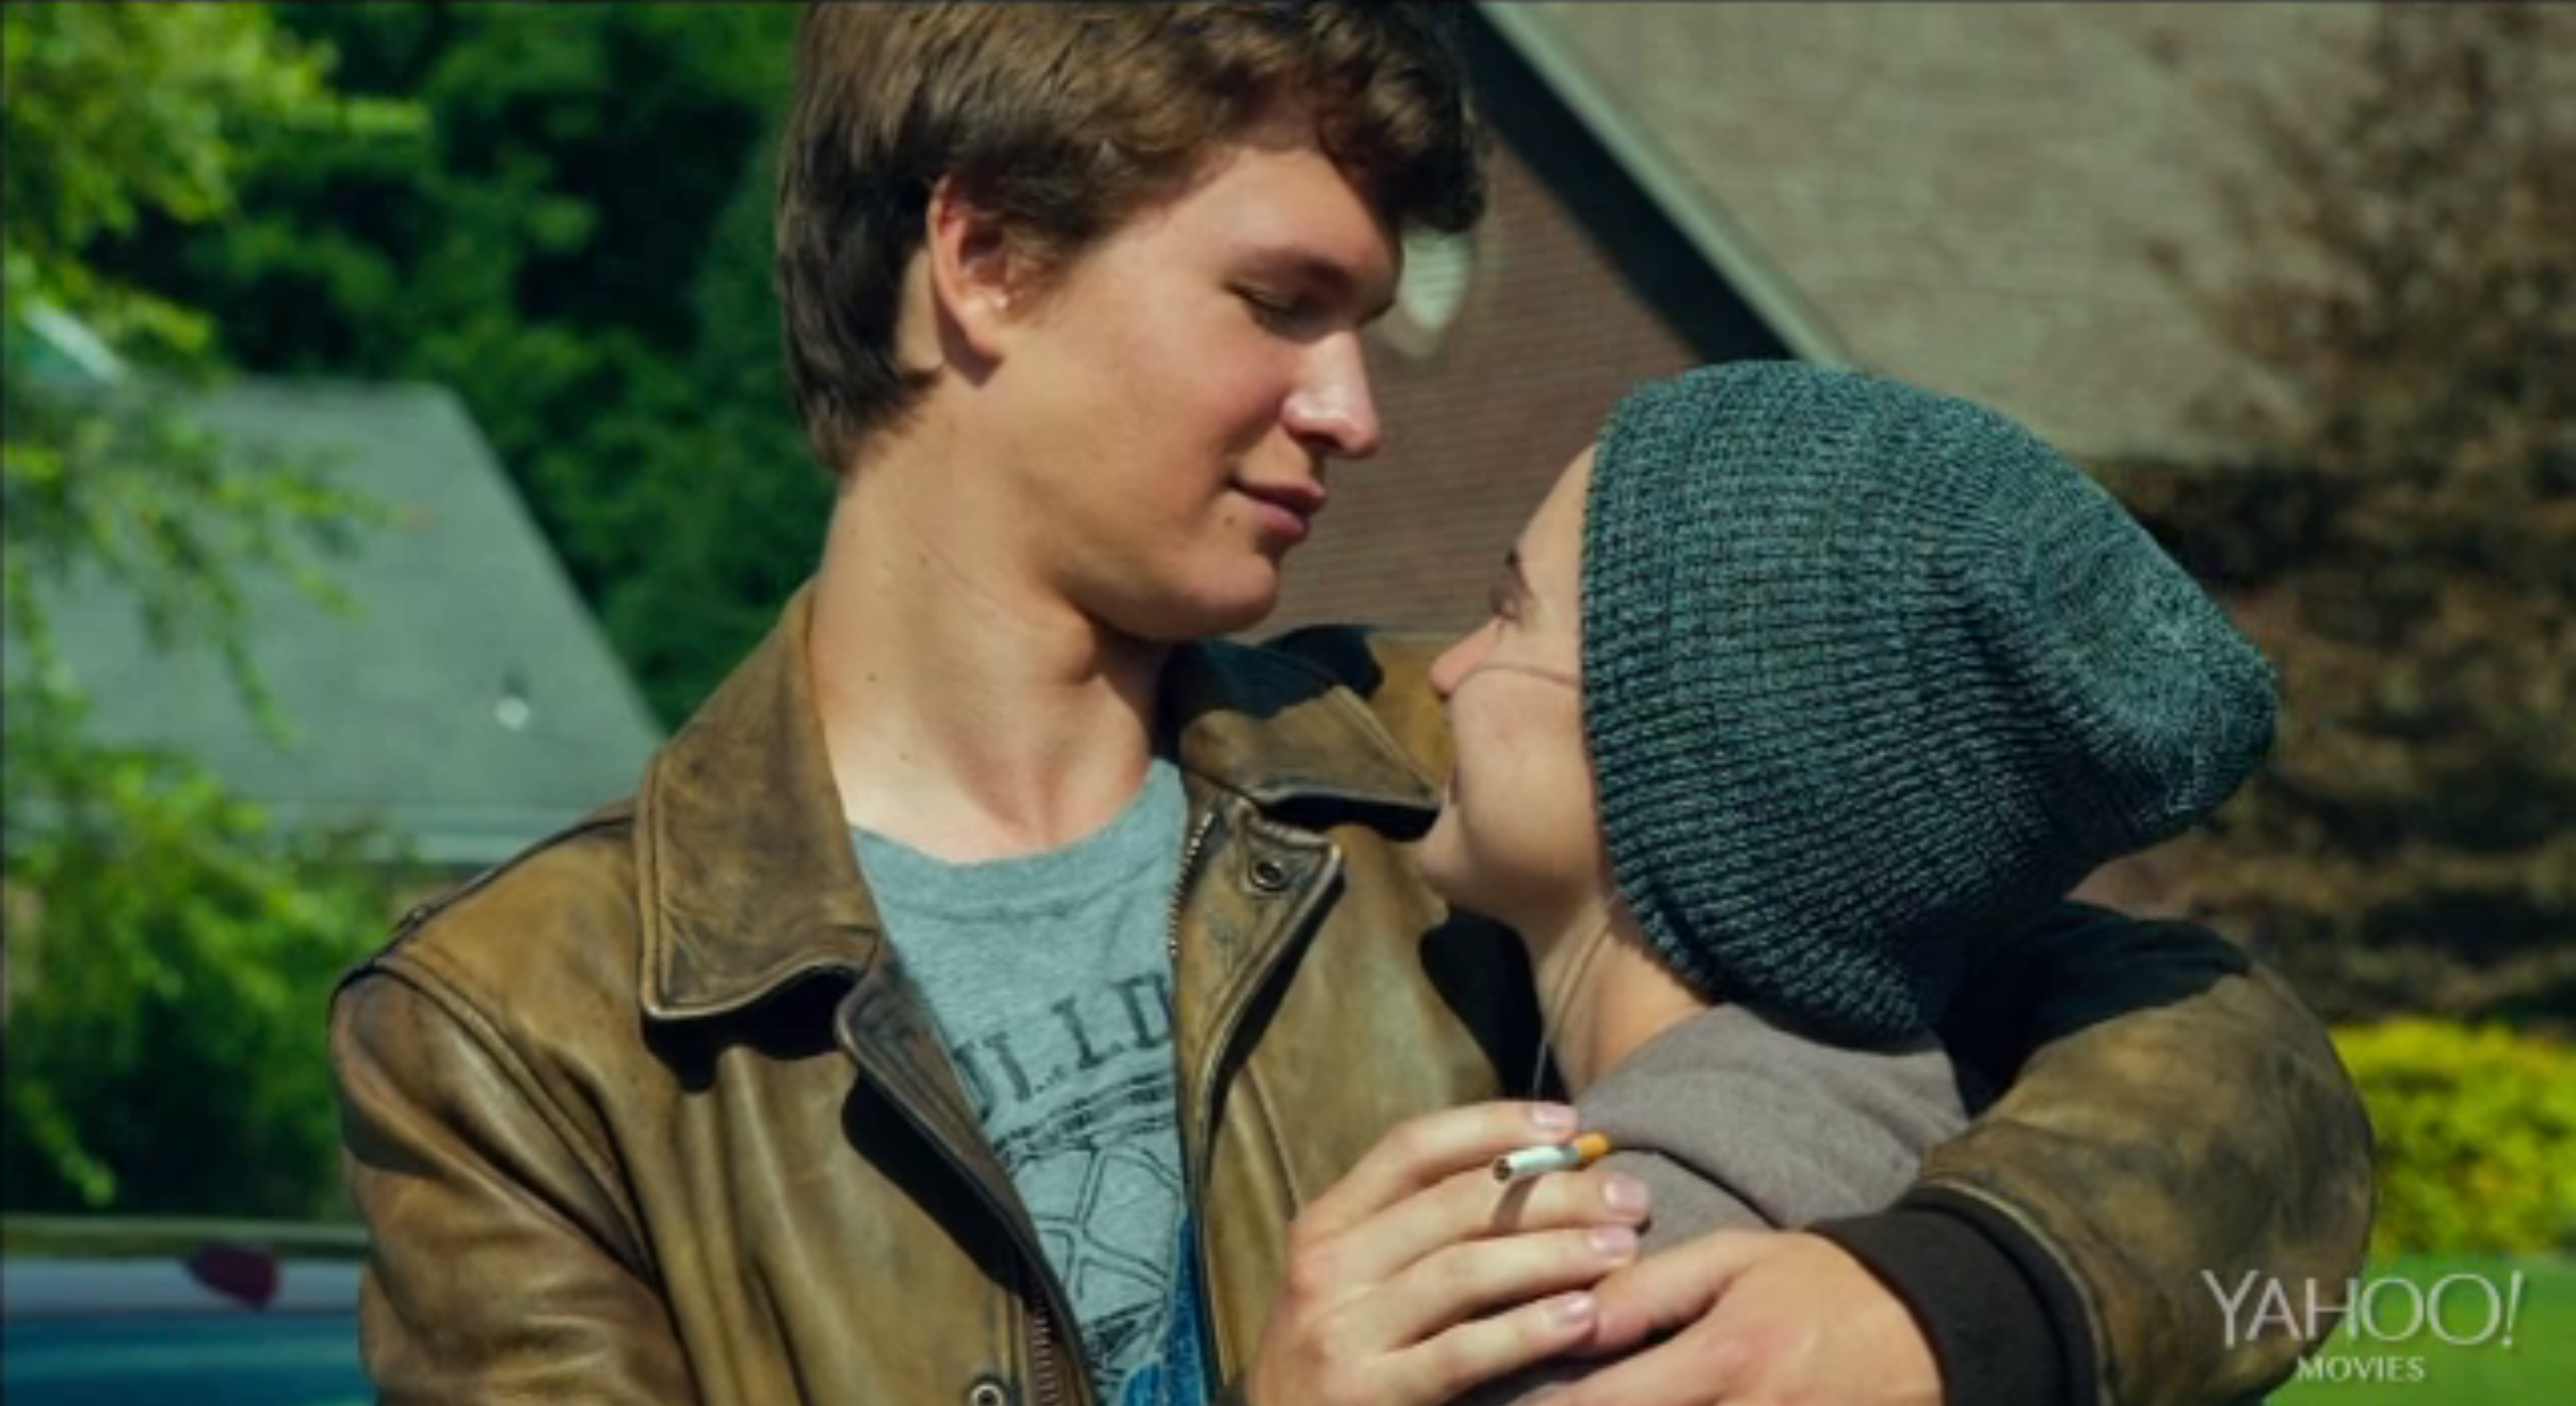 Movie Review: The Fault in Our Stars | Evan Crean's Film ...